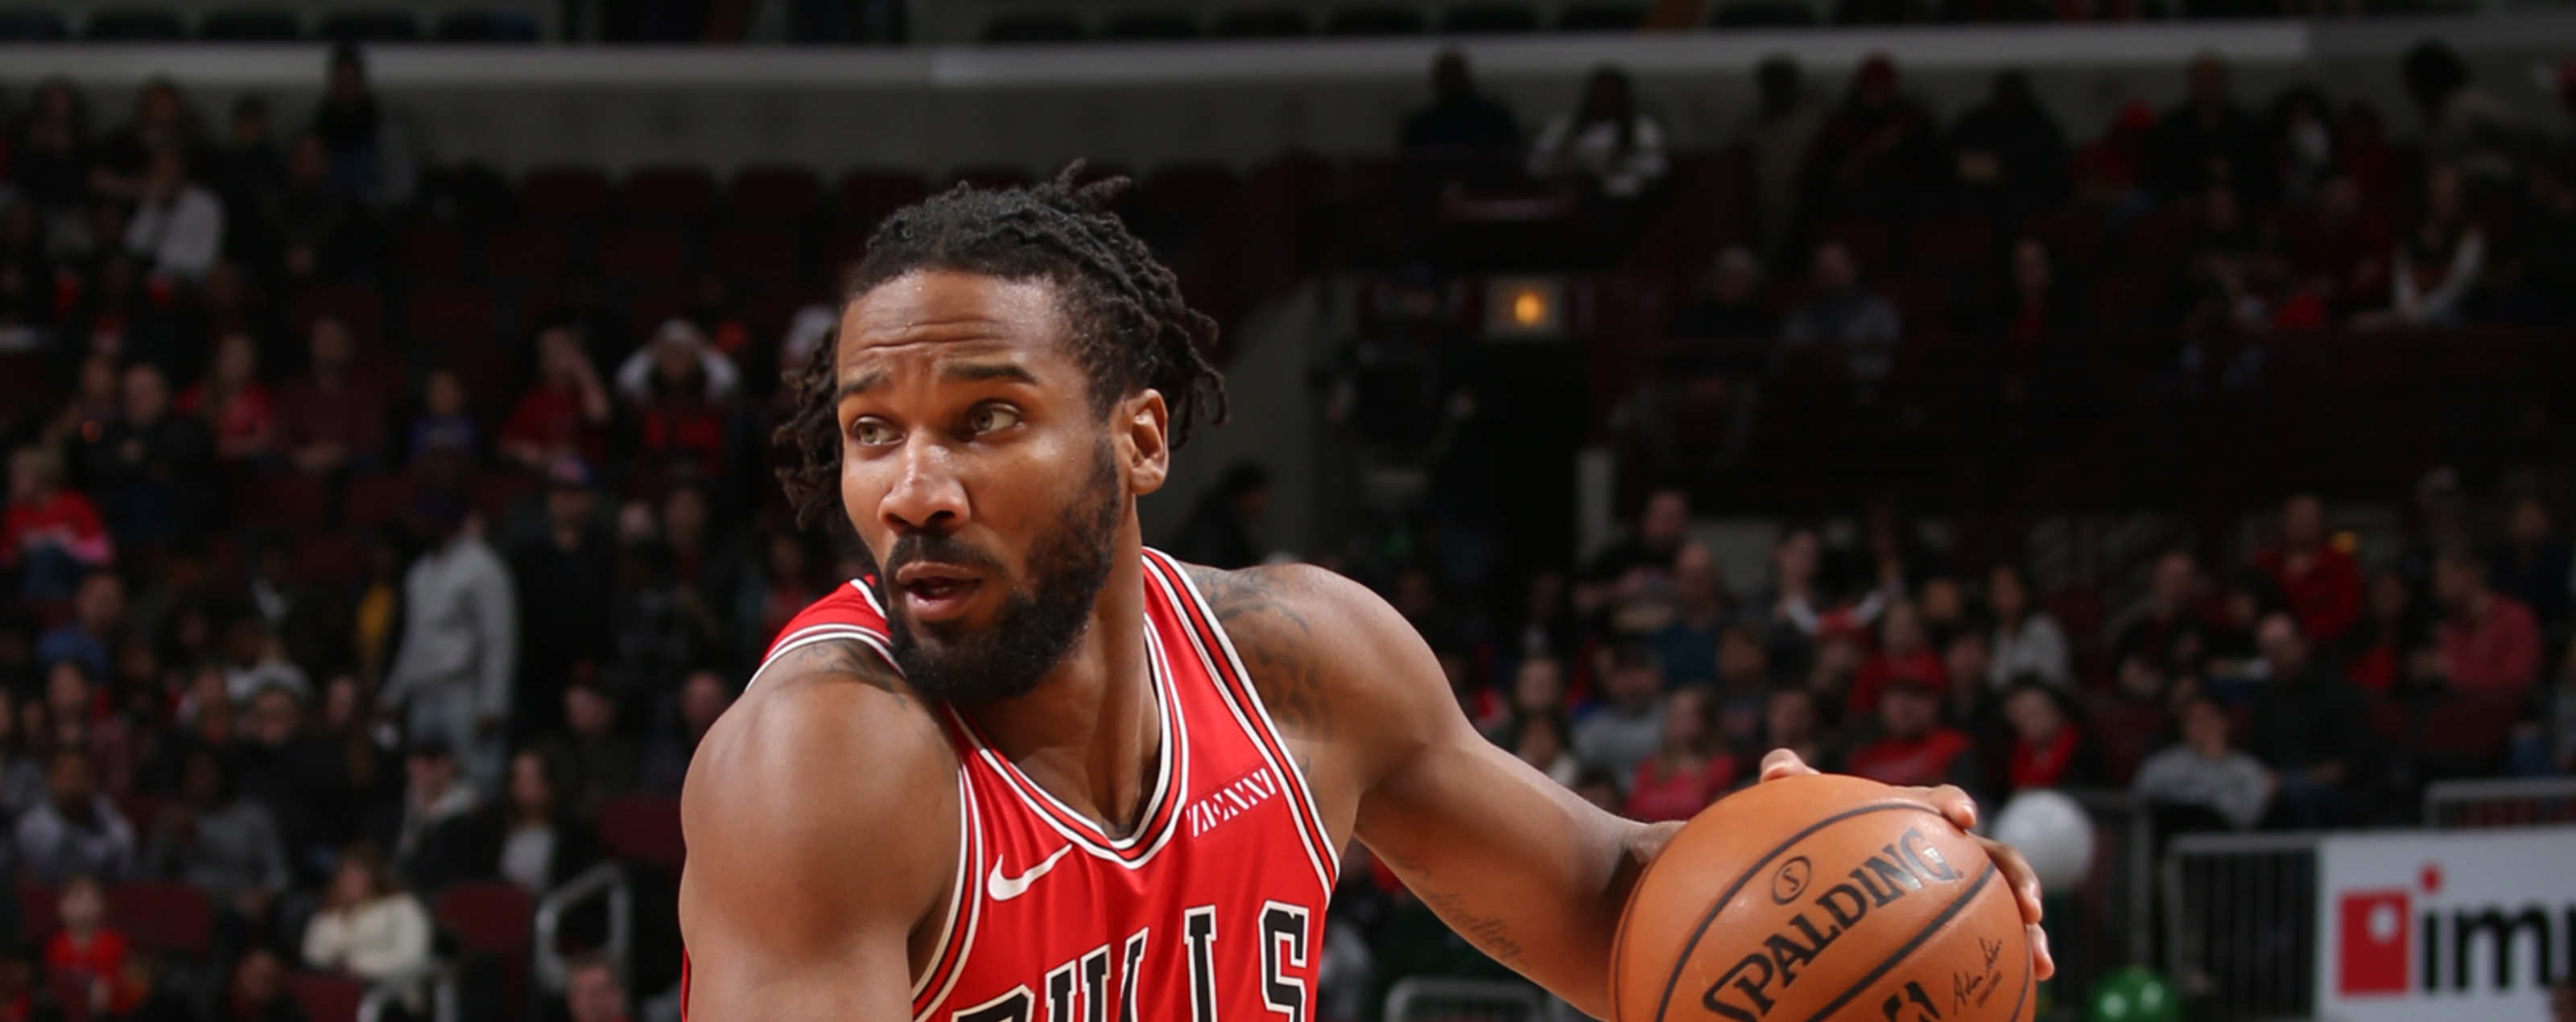 Wayne Selden #14 of the Chicago Bulls drives to the basket against the Cleveland Cavaliers on January 27, 2019 at the United Center in Chicago, Illinois.